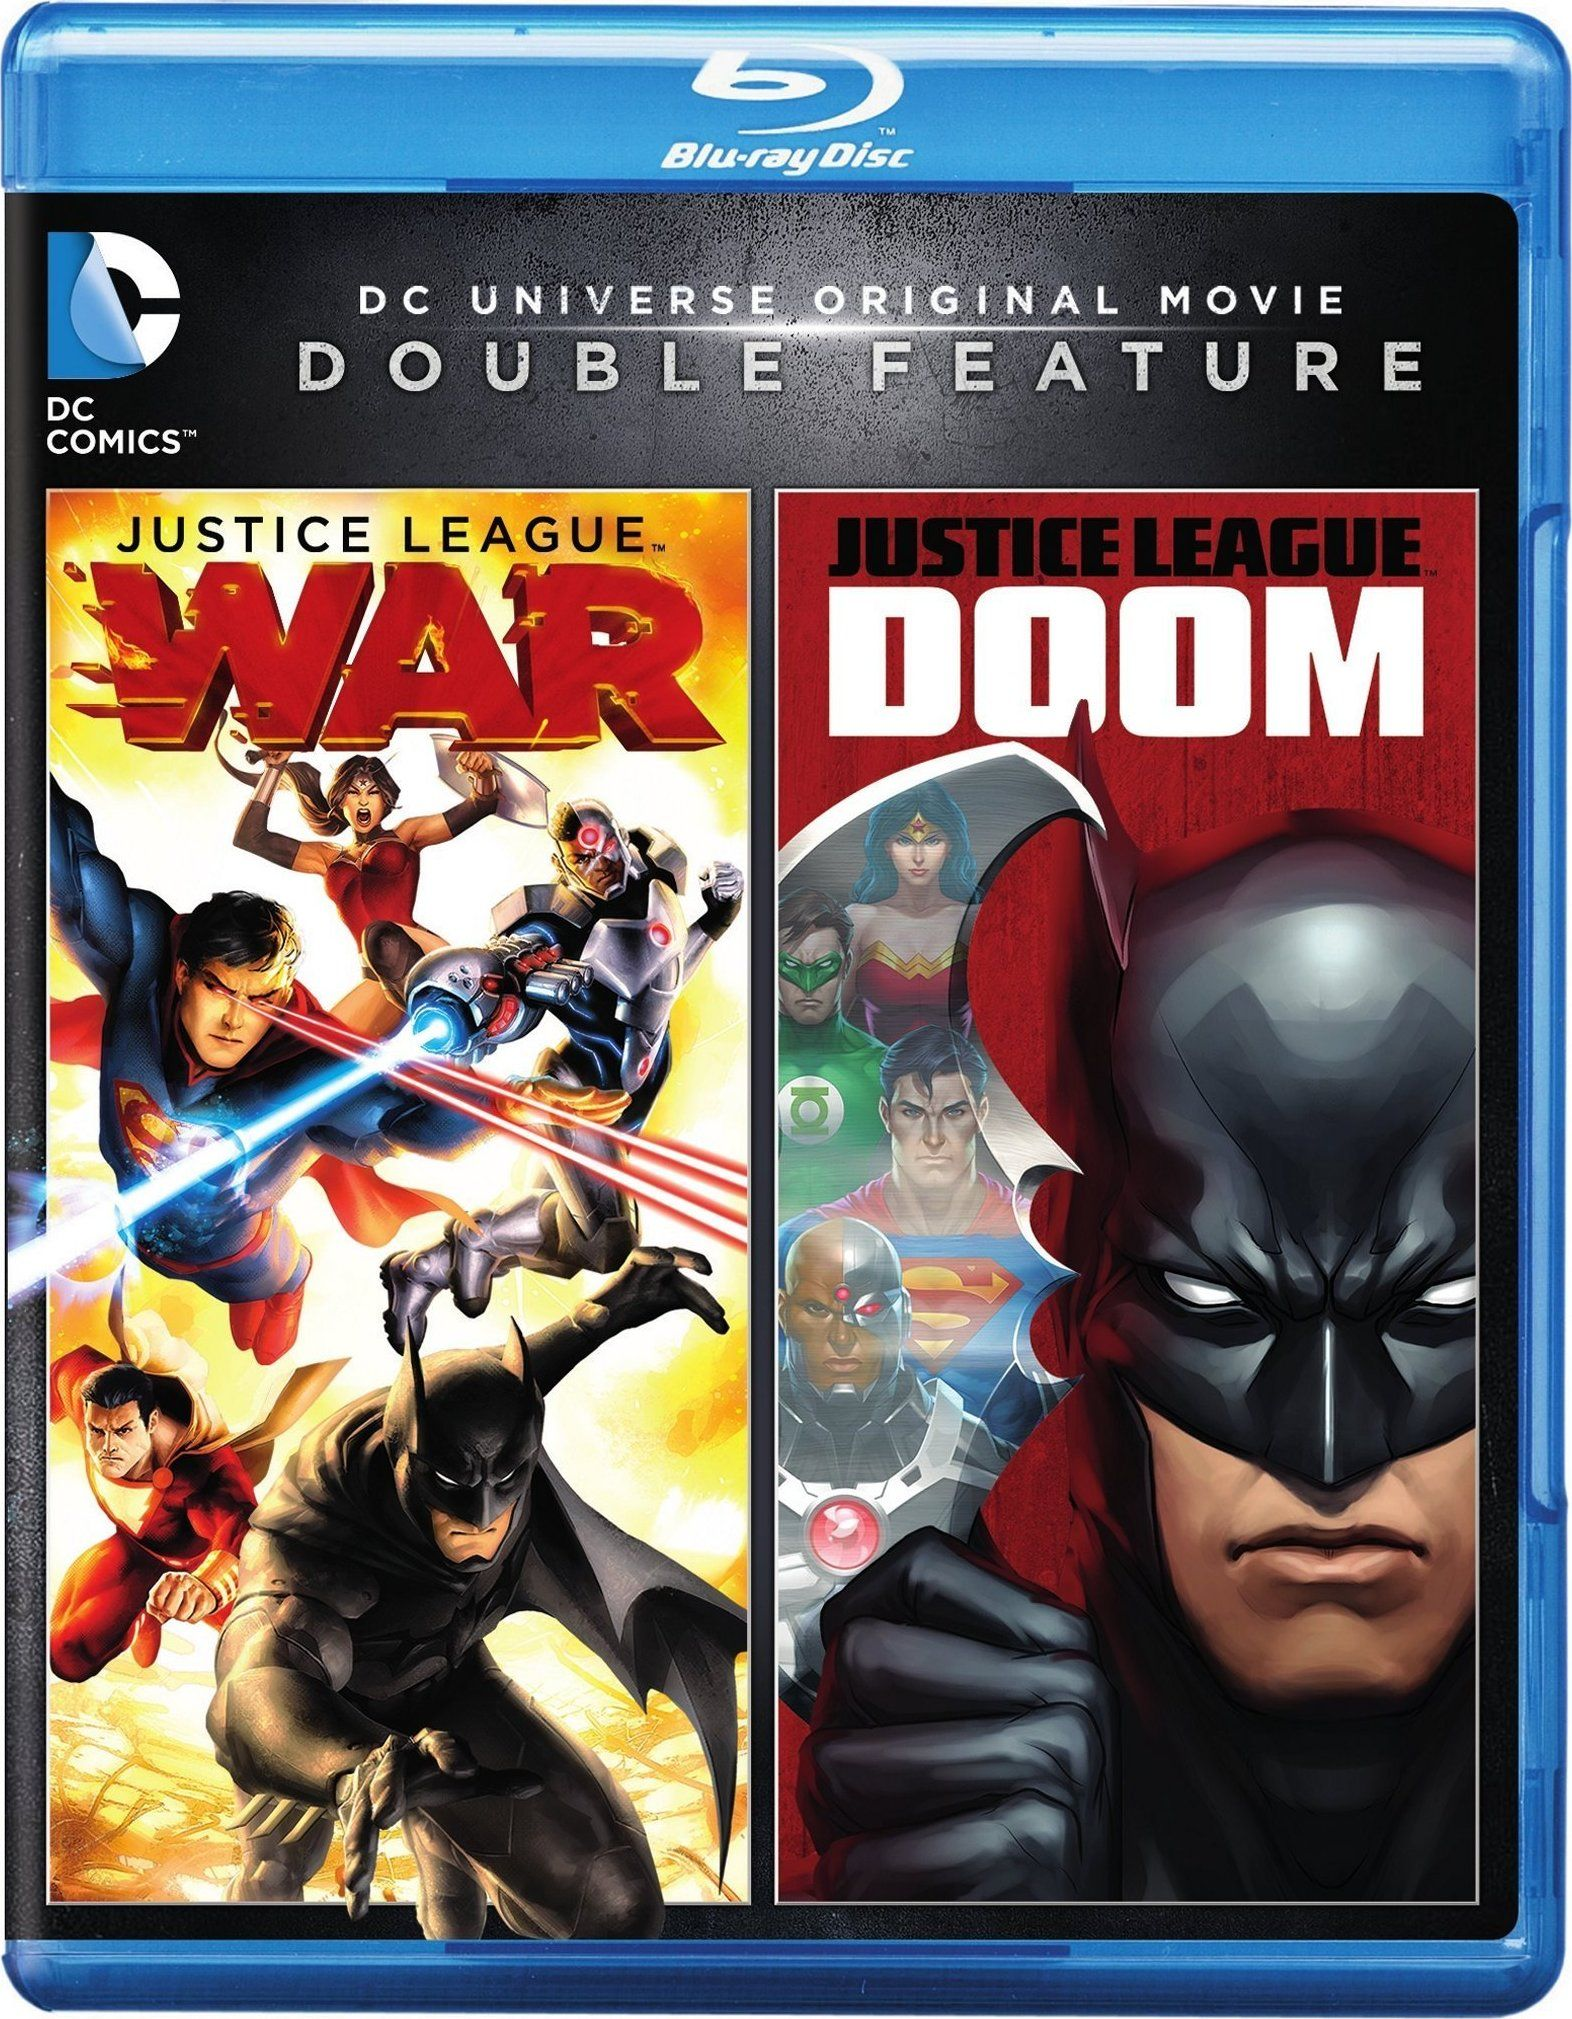 justice league doom full movie download in hindi